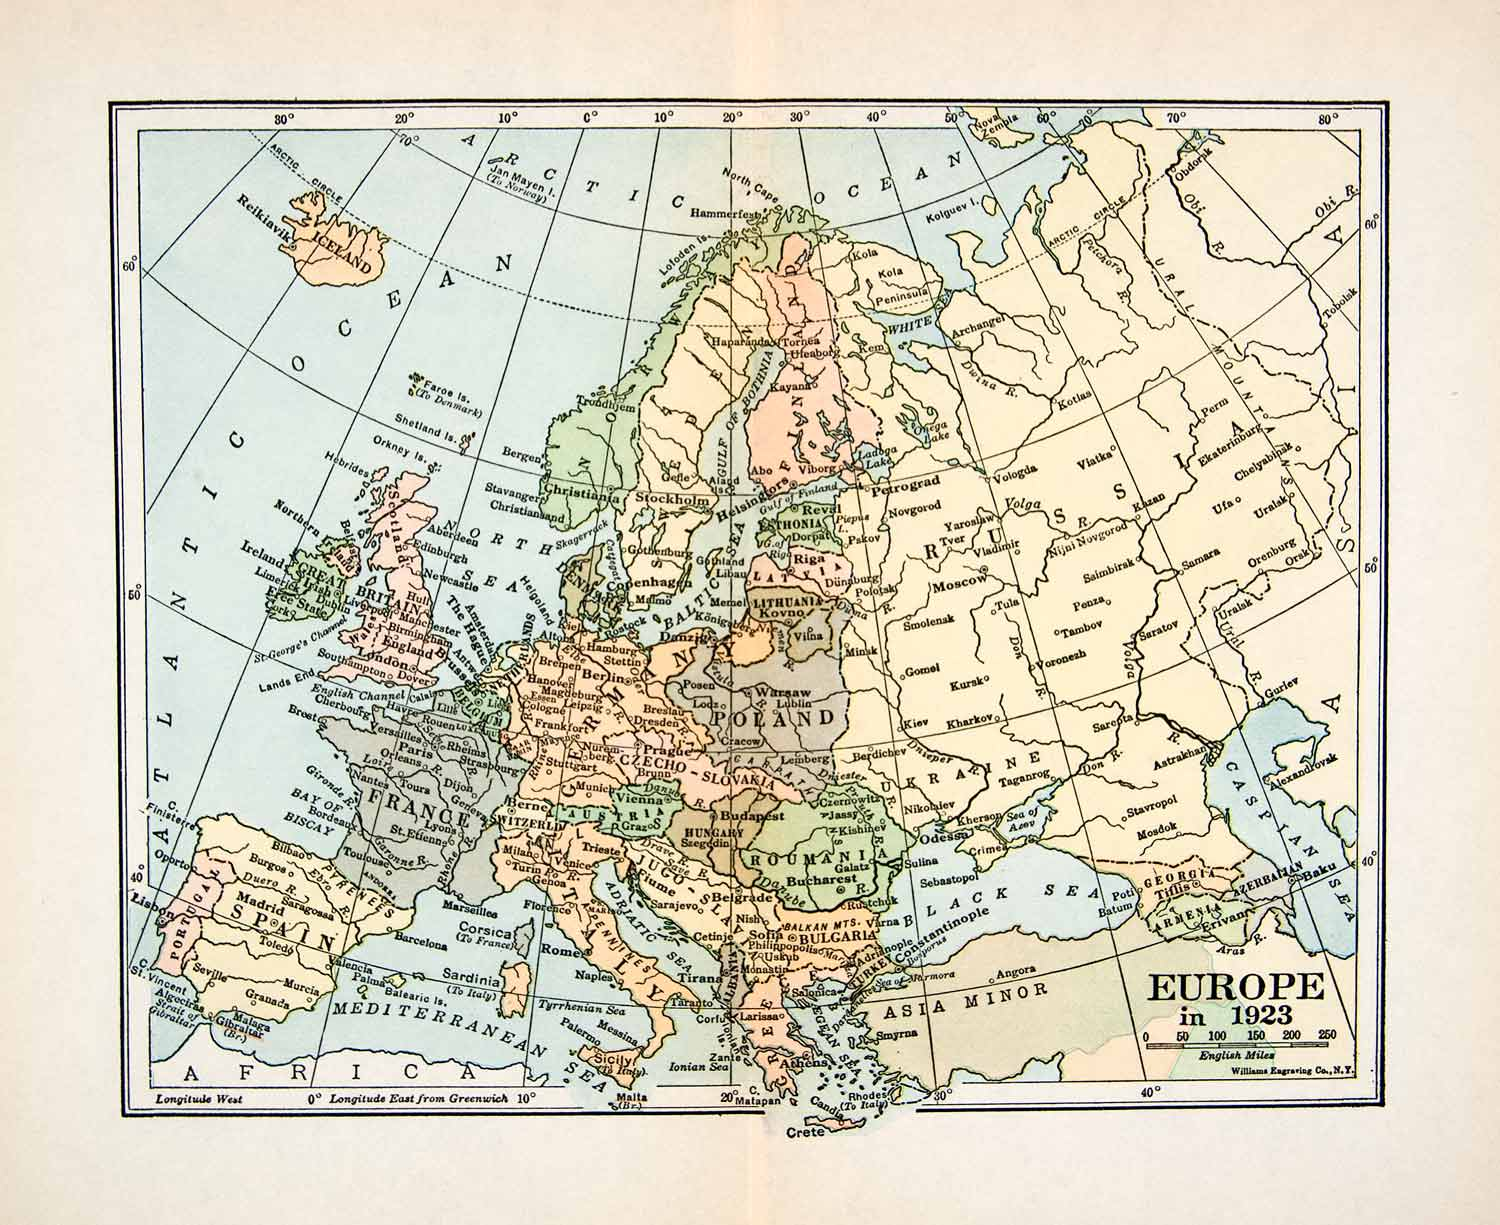 Map Of France Italy And Spain.1923 Print Map Europe Poland France Italy Spain Asia Minor Sweden Germany Xeq7